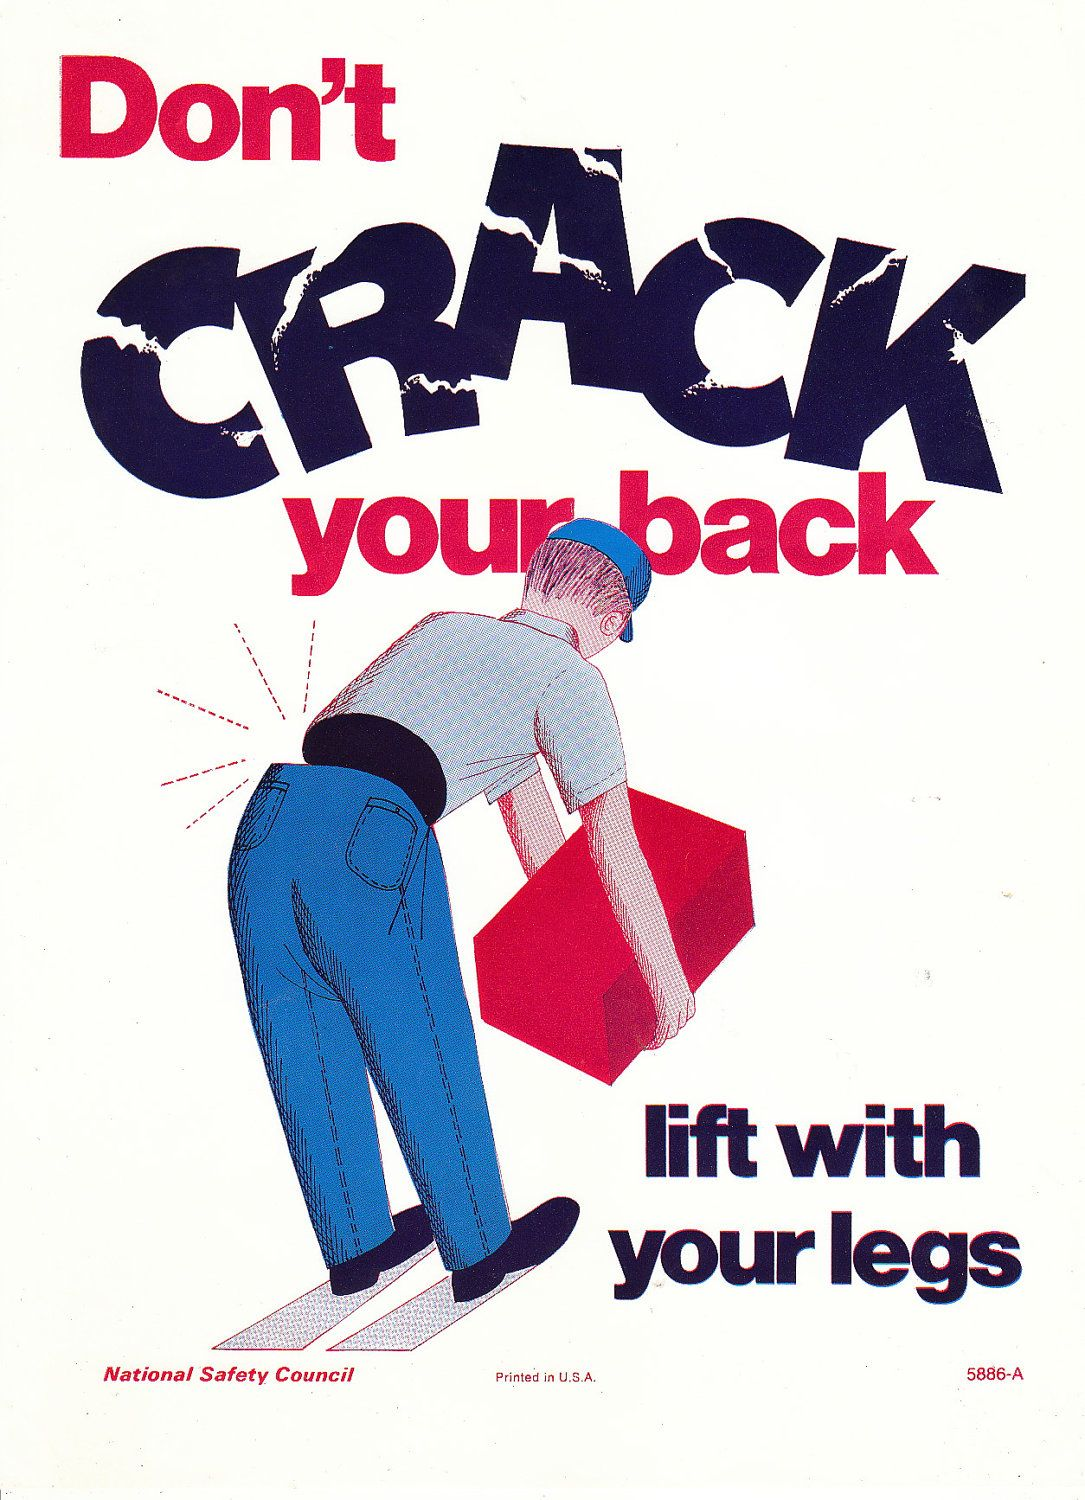 Nsc Stock Quote Inspiration Nsc Don't Crack Your Back  Design Posters  Pinterest Design Inspiration